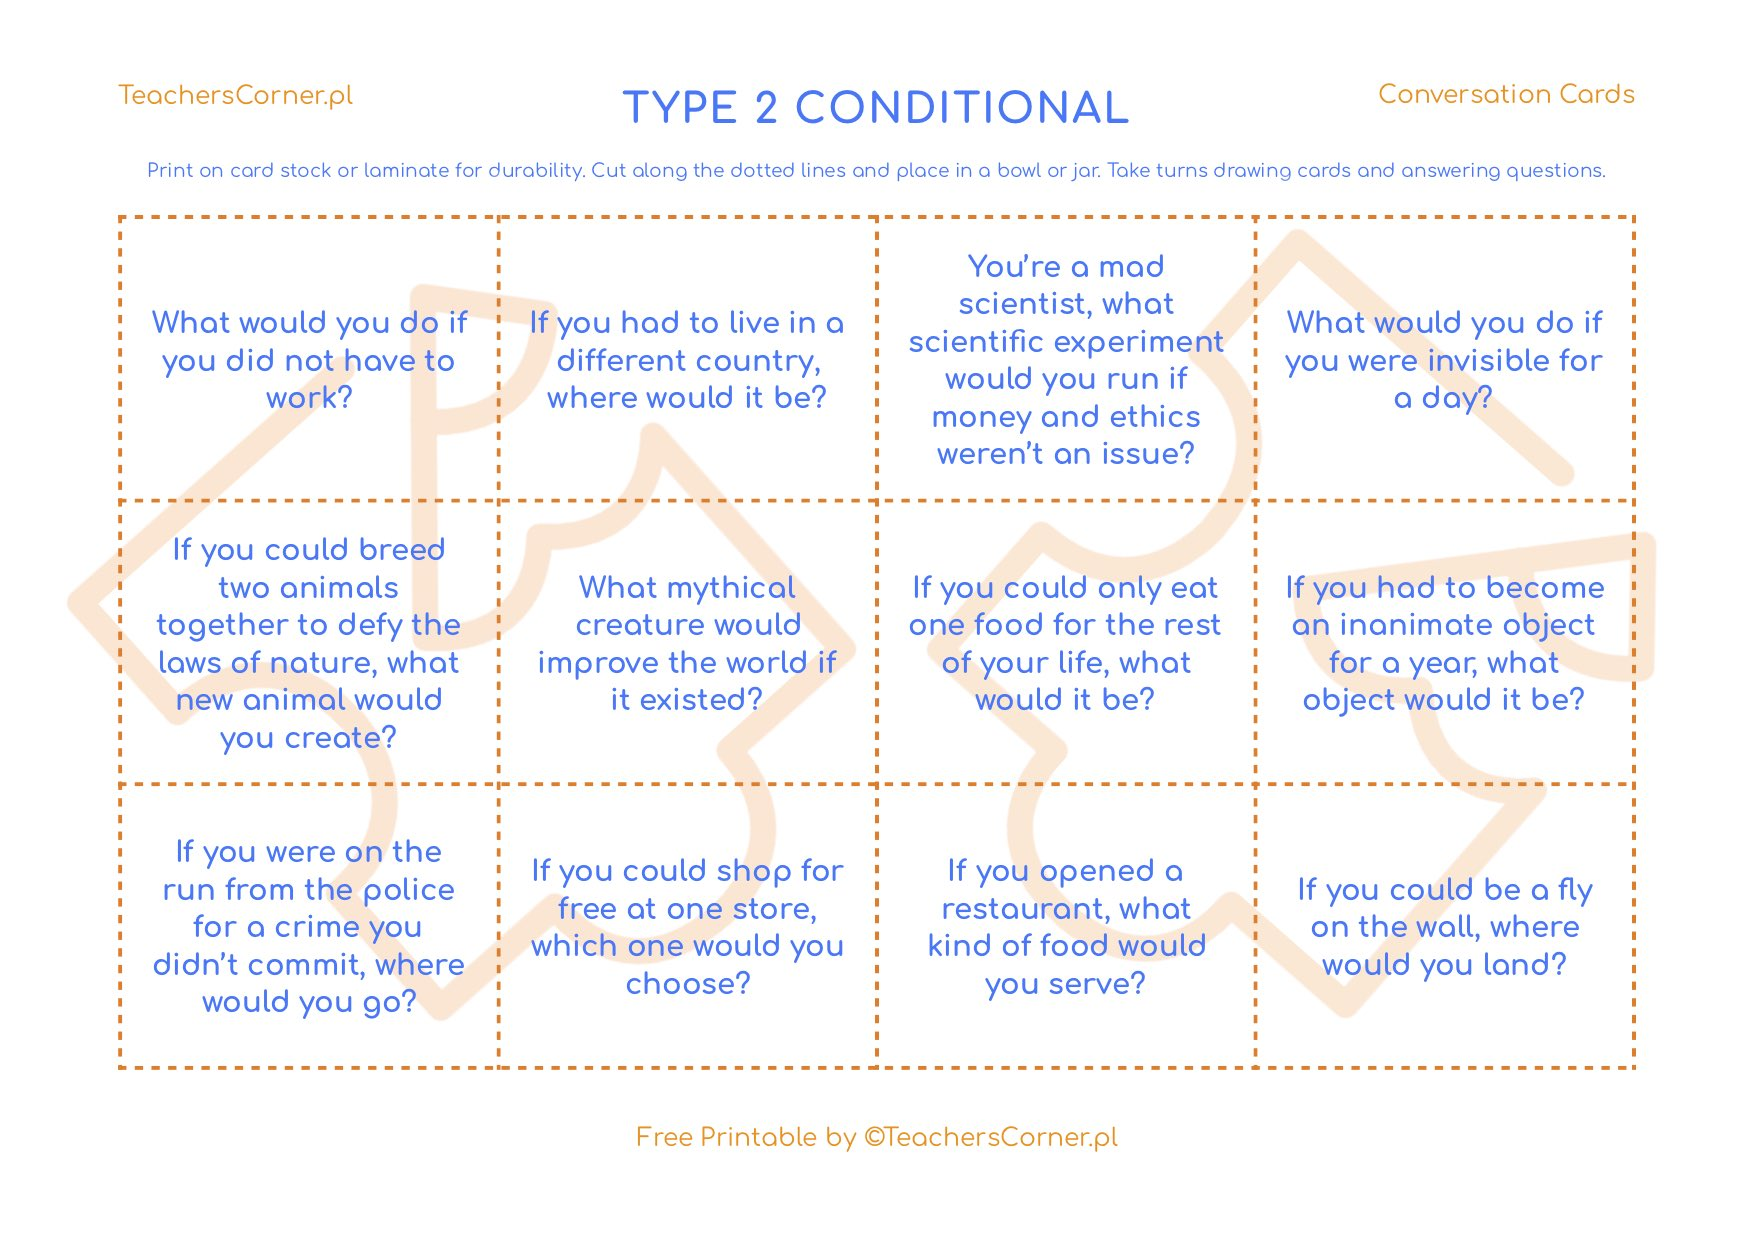 type 2 conditional conversation cards